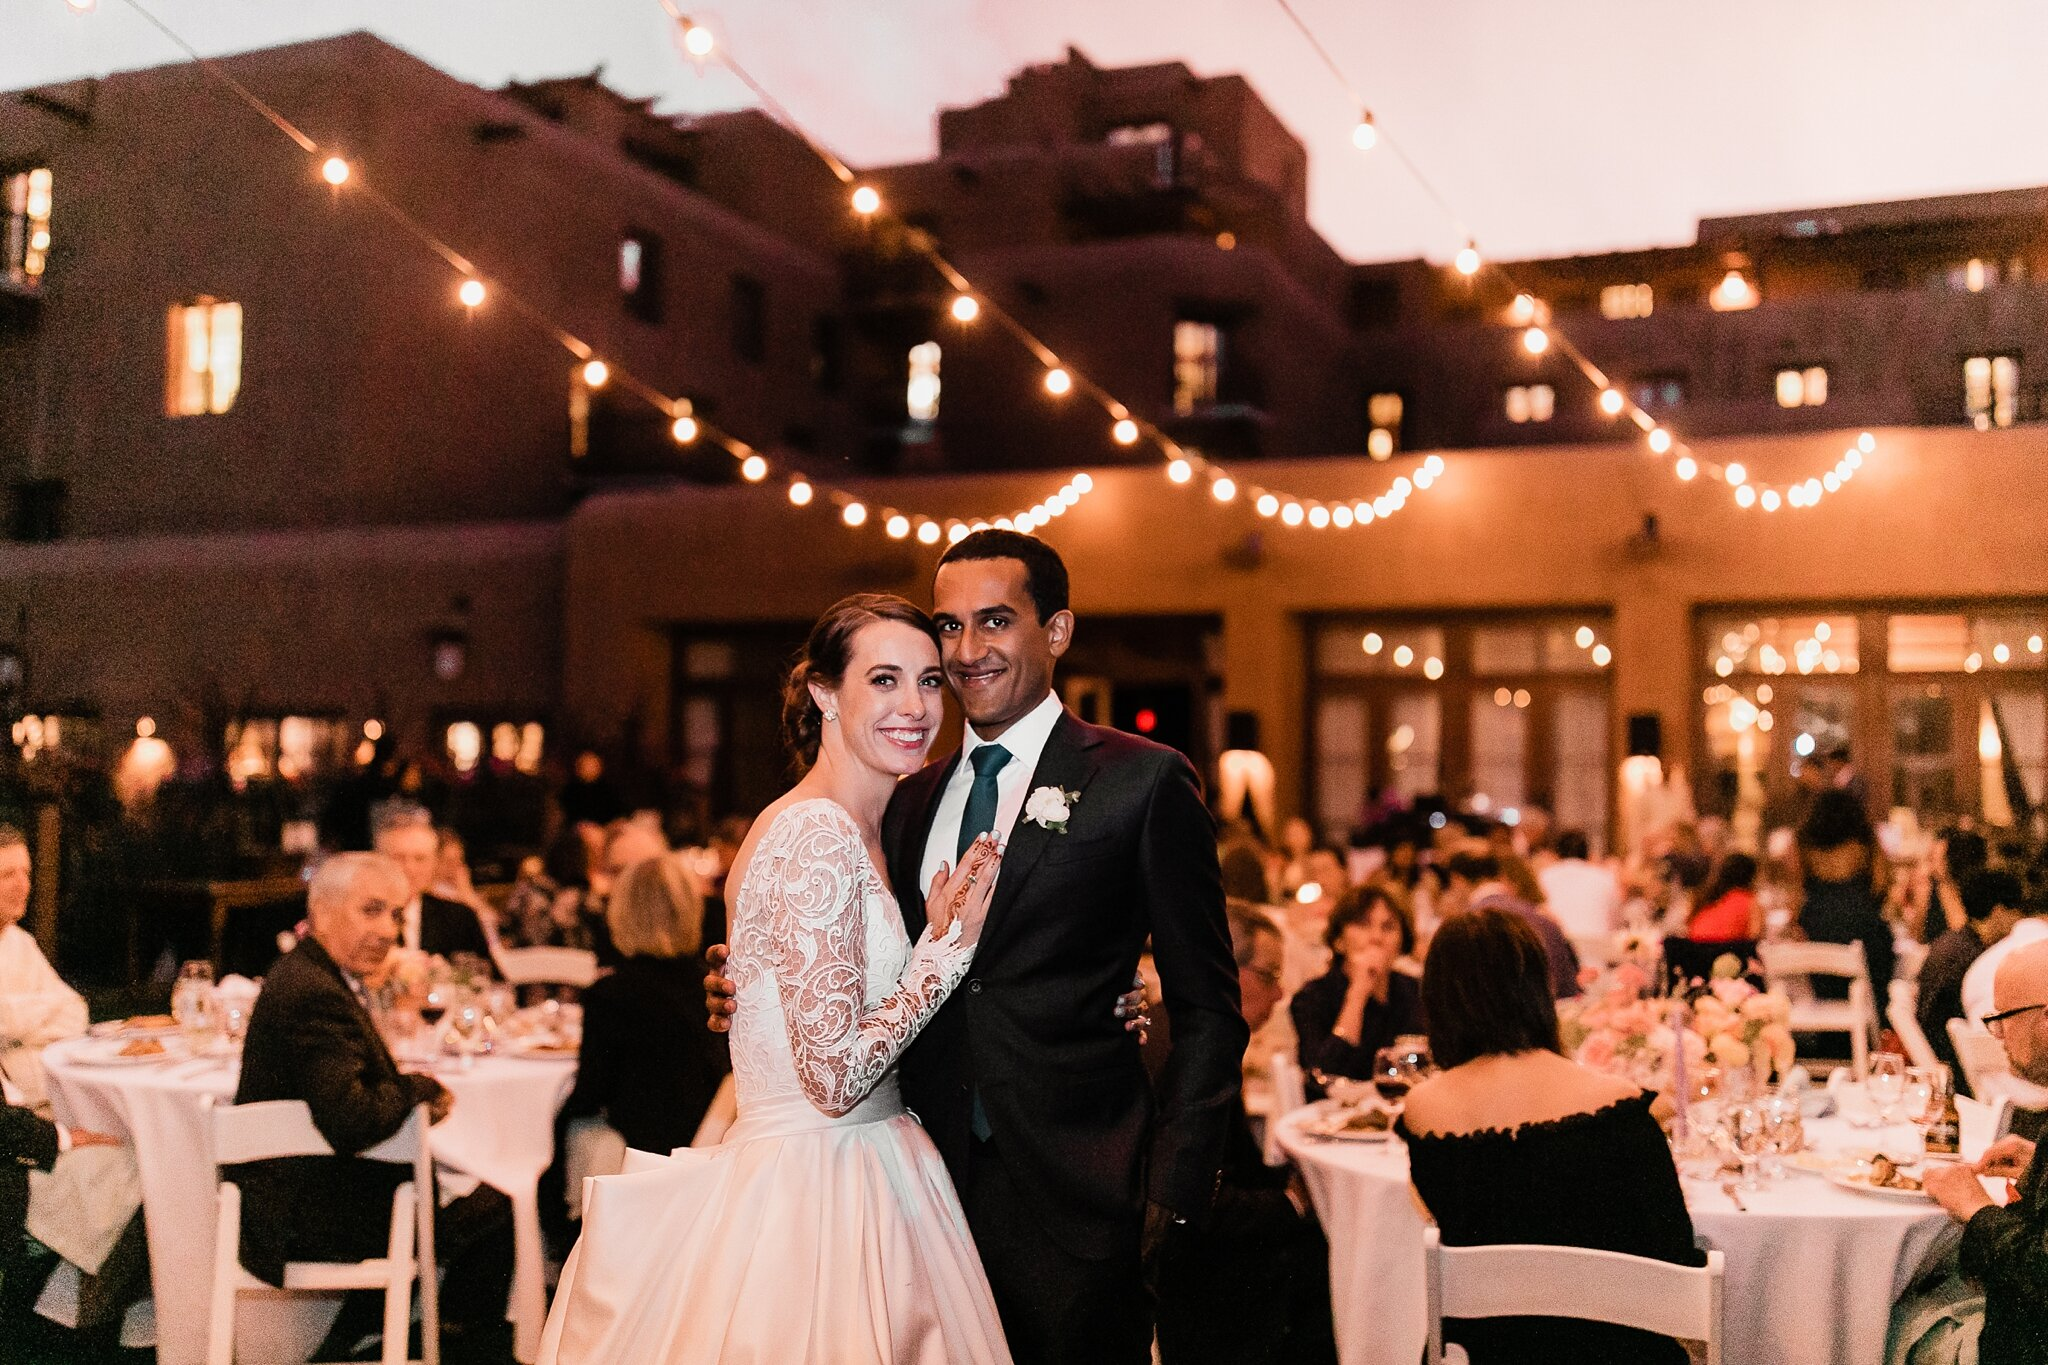 Alicia+lucia+photography+-+albuquerque+wedding+photographer+-+santa+fe+wedding+photography+-+new+mexico+wedding+photographer+-+new+mexico+wedding+-+hindu+wedding+-+catholic+wedding+-+multicultural+wedding+-+santa+fe+wedding_0132.jpg